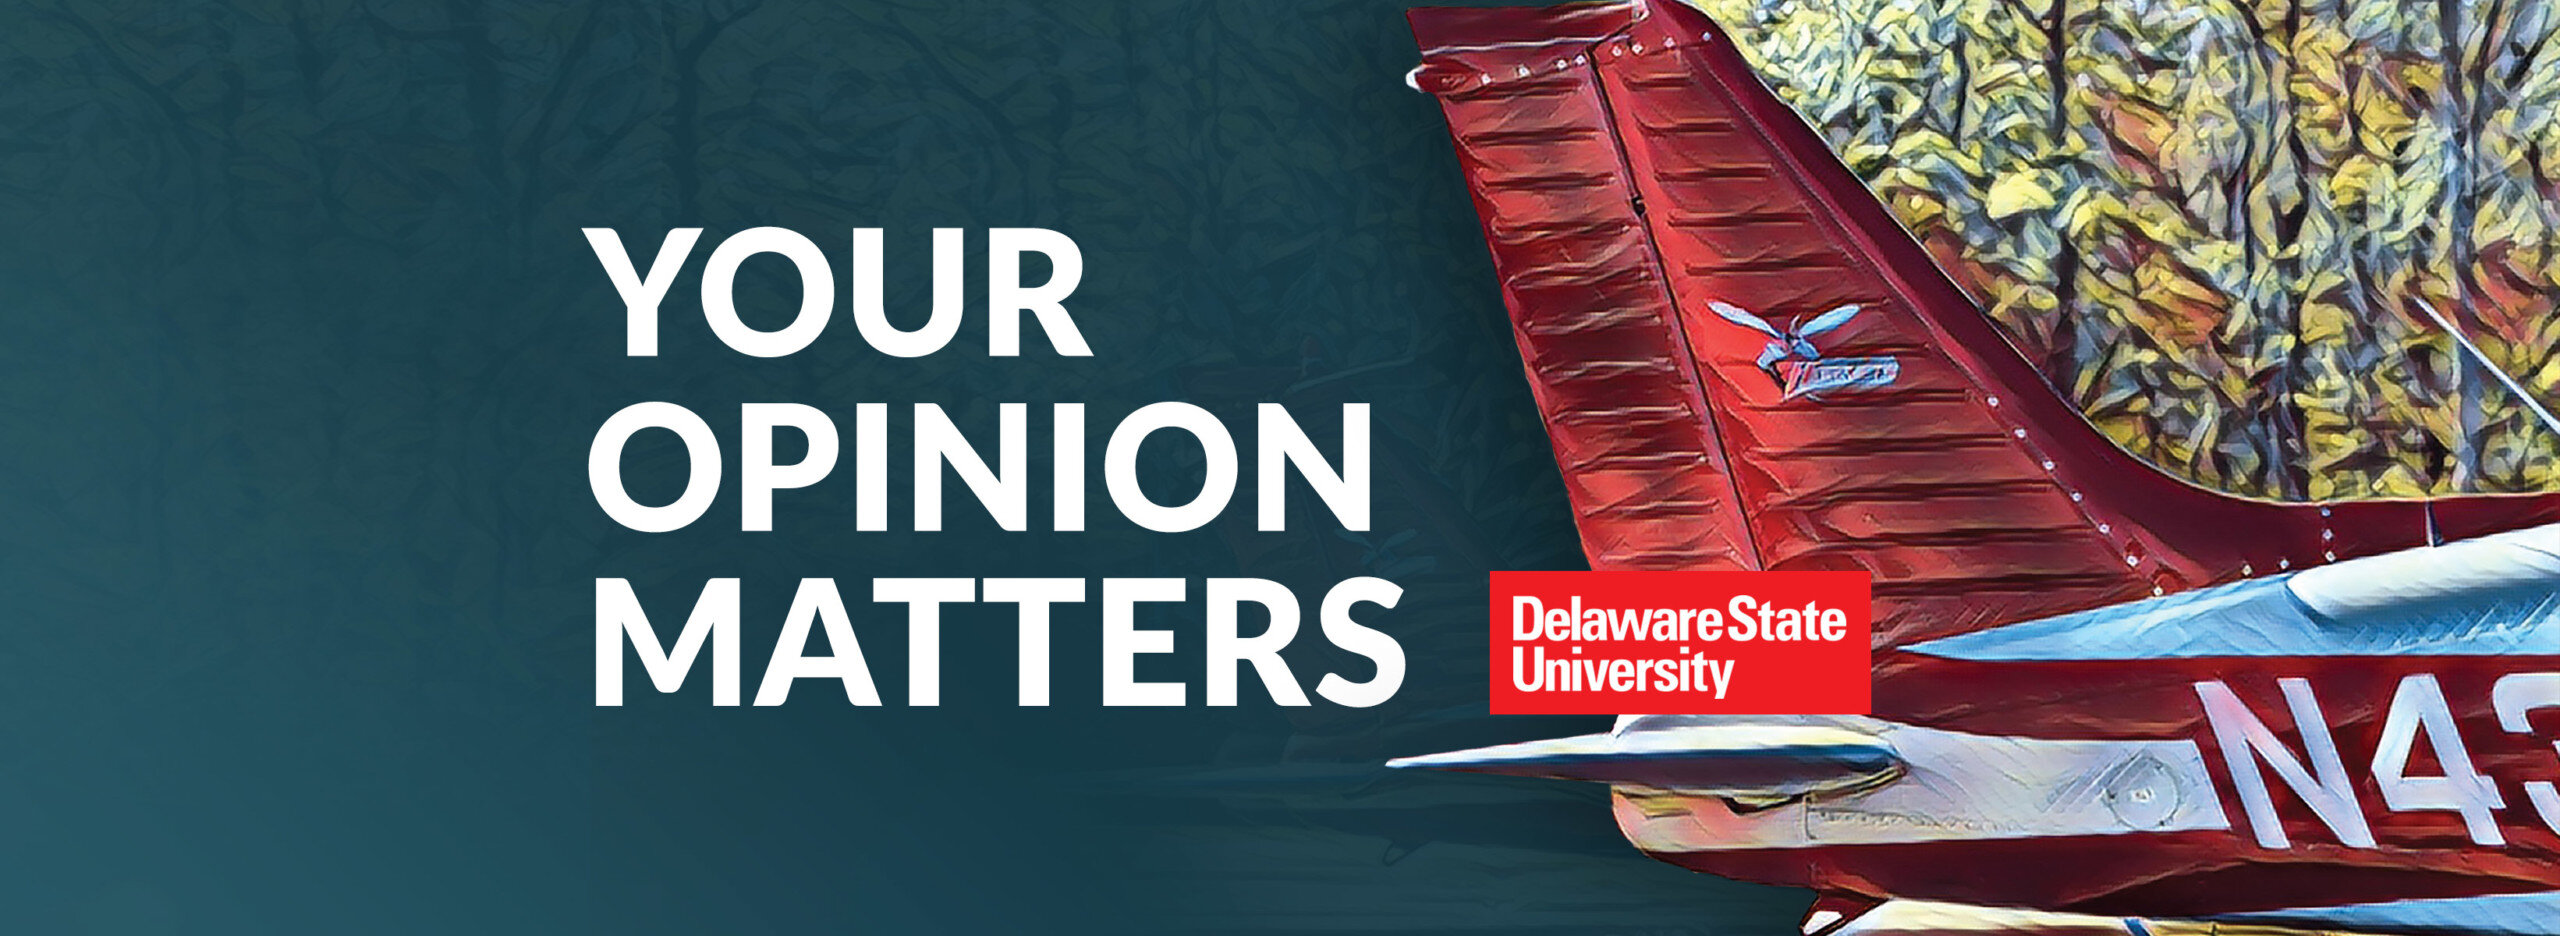 Delaware State University - Alumni Survey Thank You